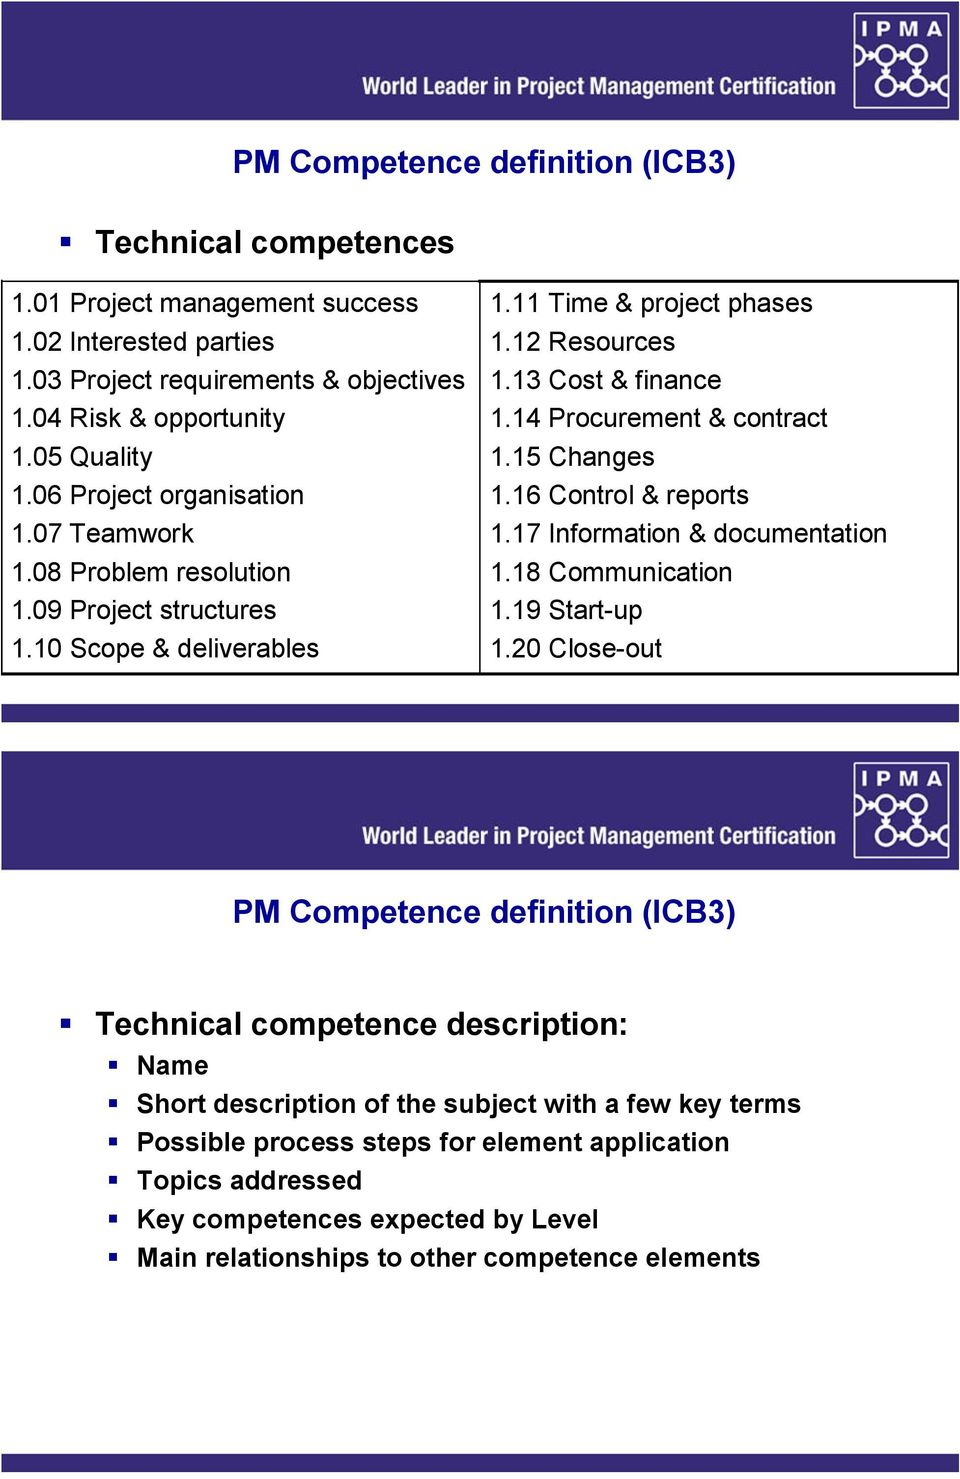 14 Procurement & contract 1.15 Changes 1.16 Control & reports 1.17 Information & documentation 1.18 Communication 1.19 Start-up 1.